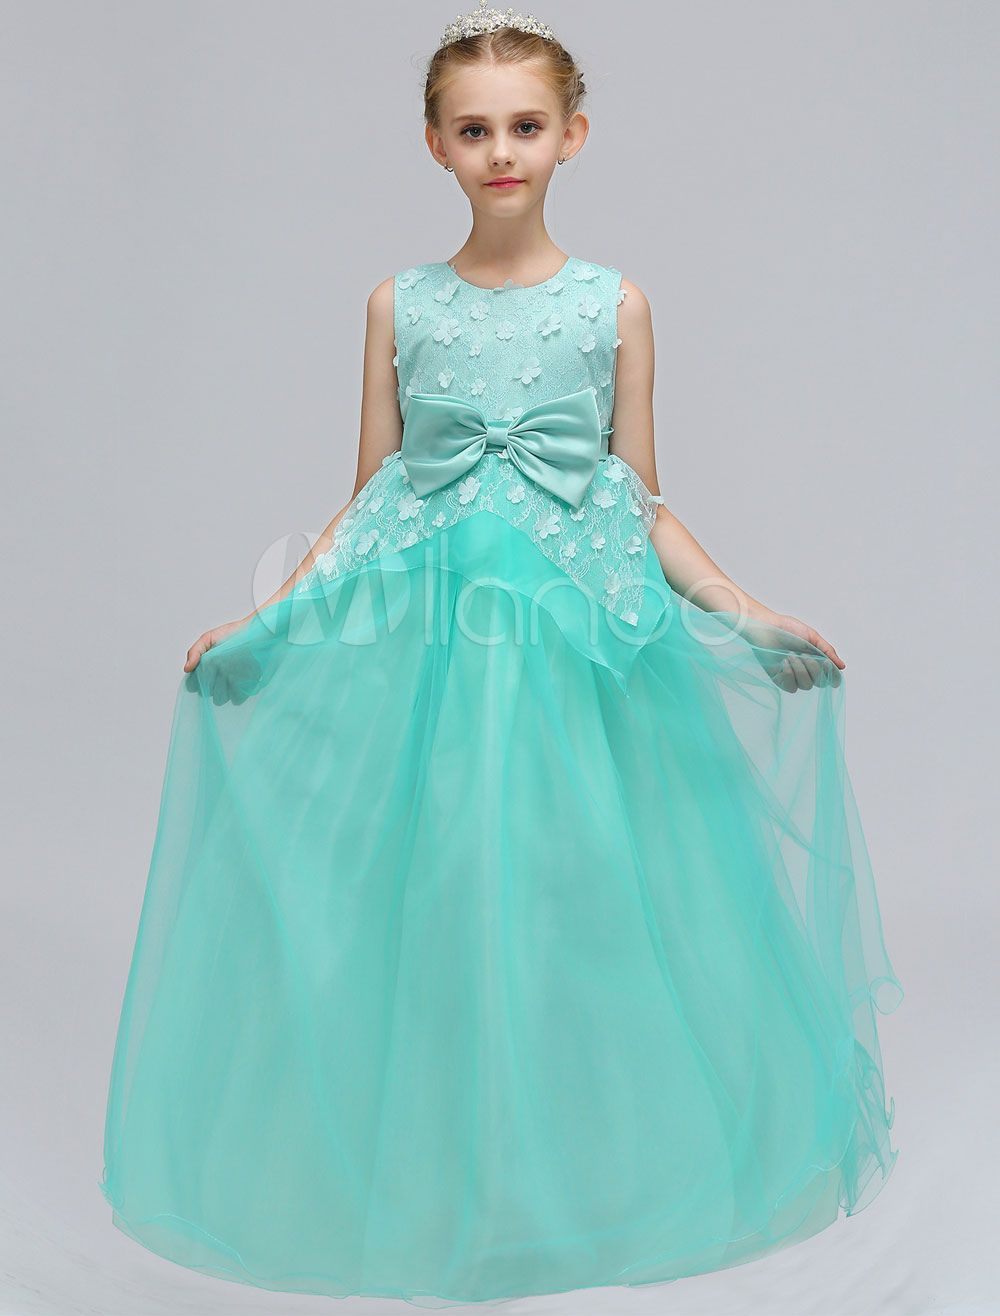 Flower girl dresses mint green tulle lace bows a line